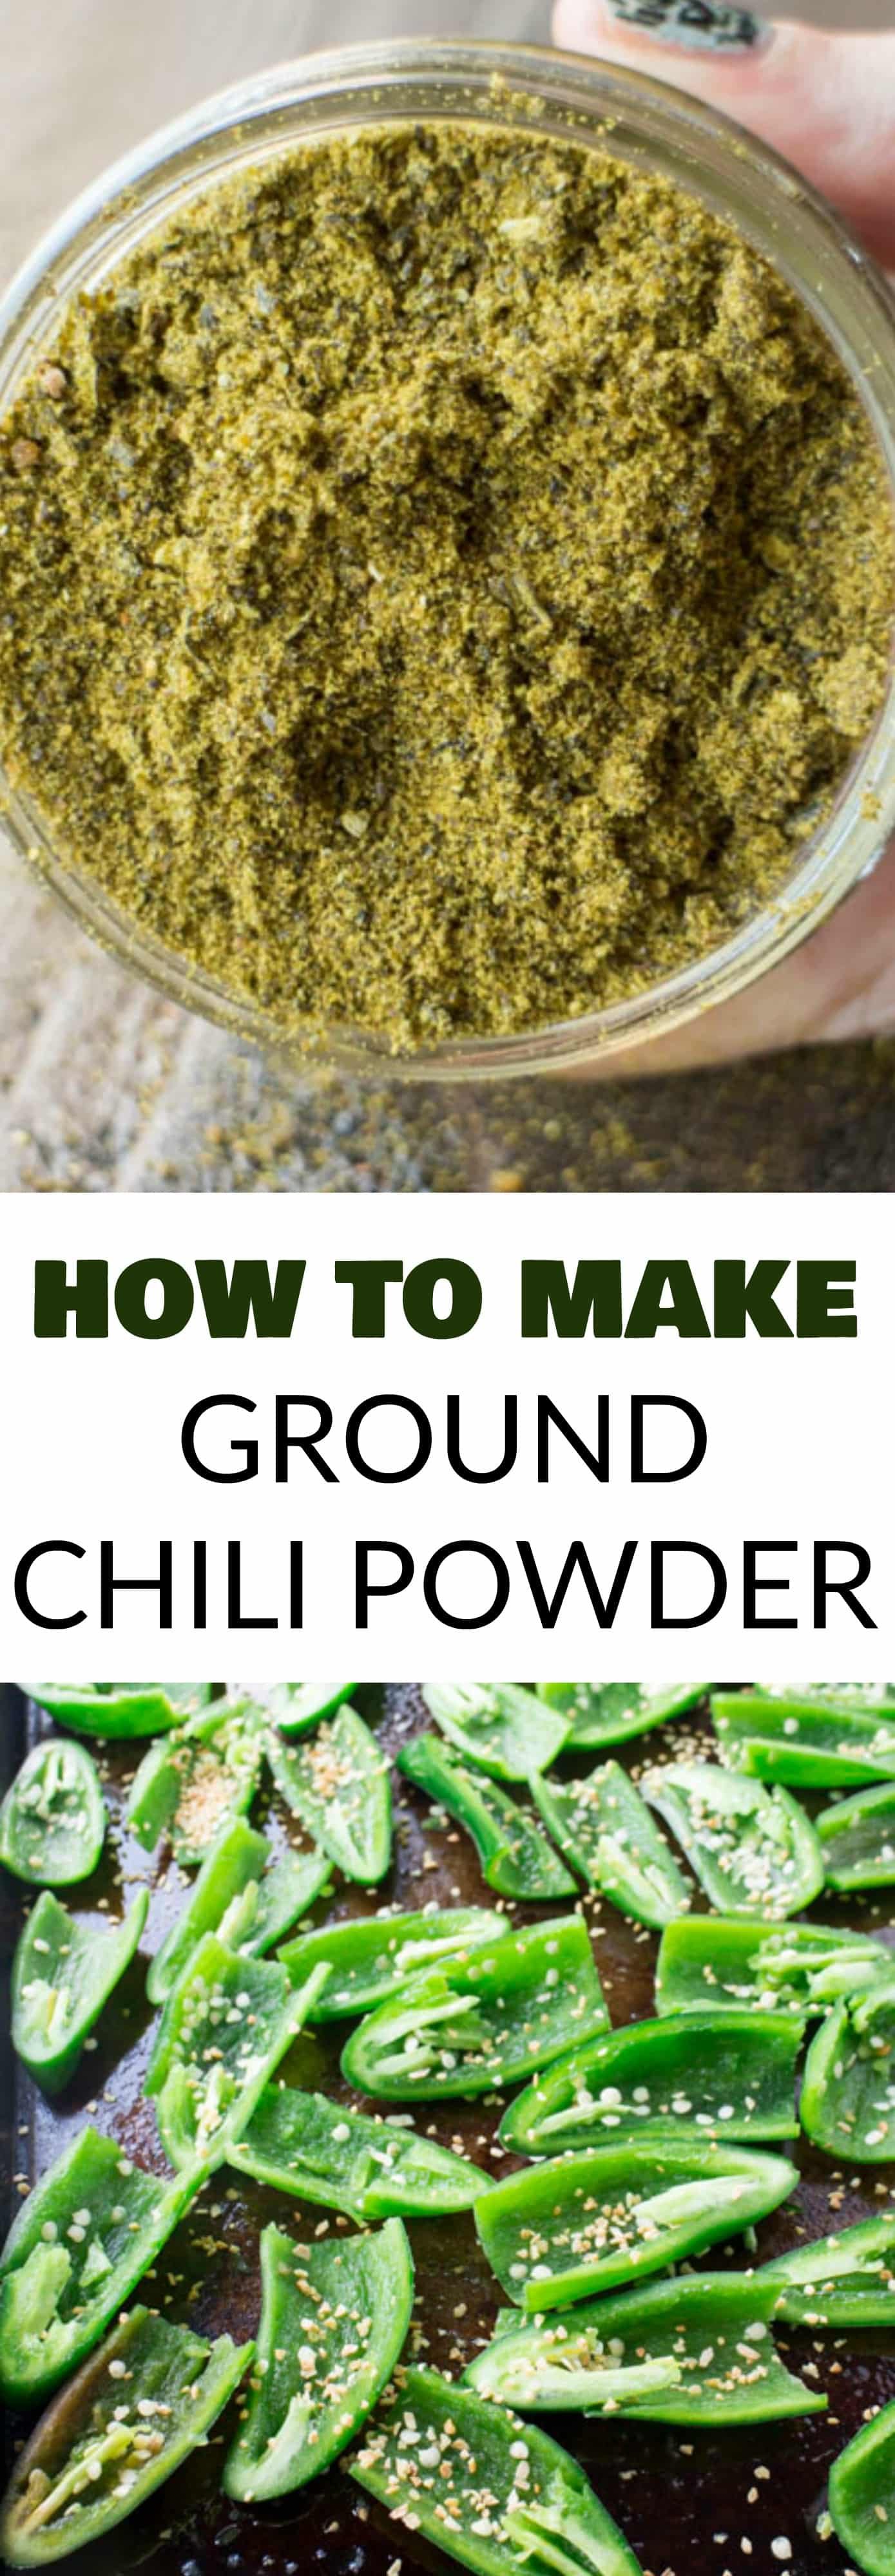 EASY STEP BY STEP directions on How to Make Ground Chili Powder from Jalapeno Peppers! This homemade recipe shows how to dry jalapeno peppers and then crush into ground seasoning. It's a super easy DIY project, perfect if you have extra jalapeno peppers! I do this every Summer with our garden peppers!